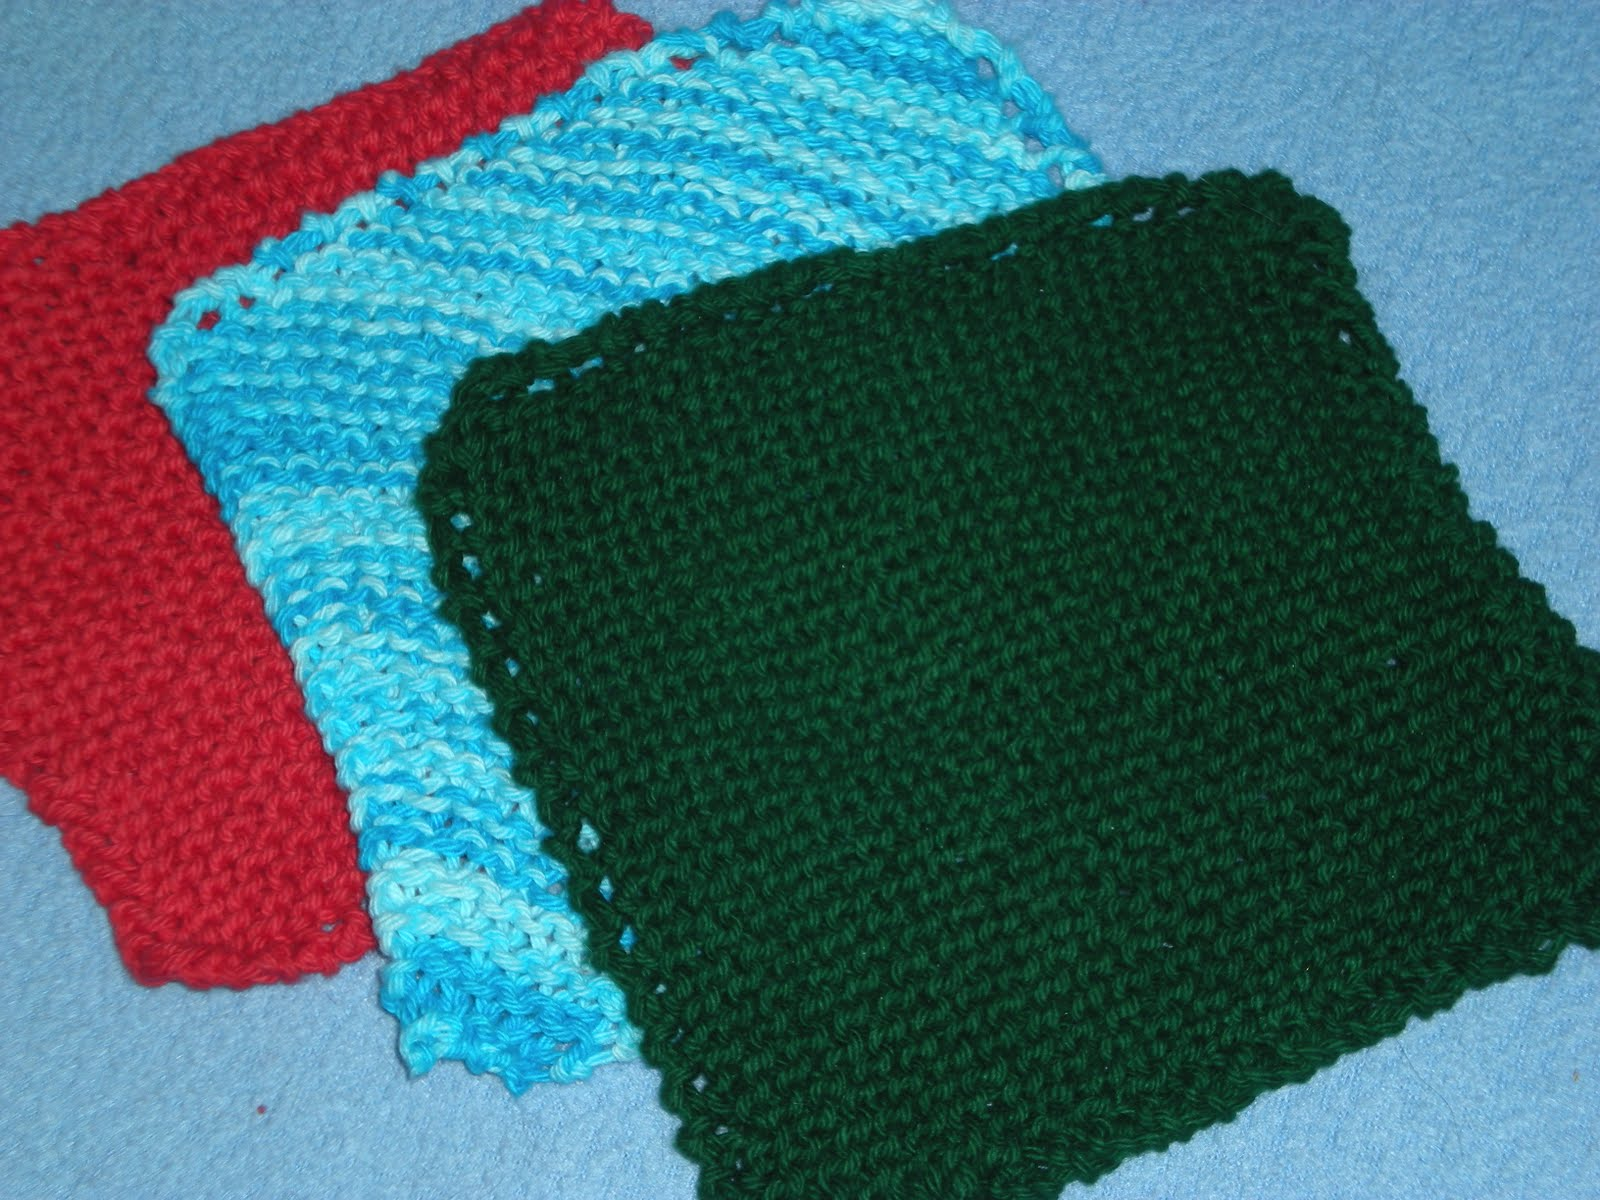 Dishcloth Knit Patterns Free : FREE KNIT DISHCLOTH PATTERNS   Free Patterns